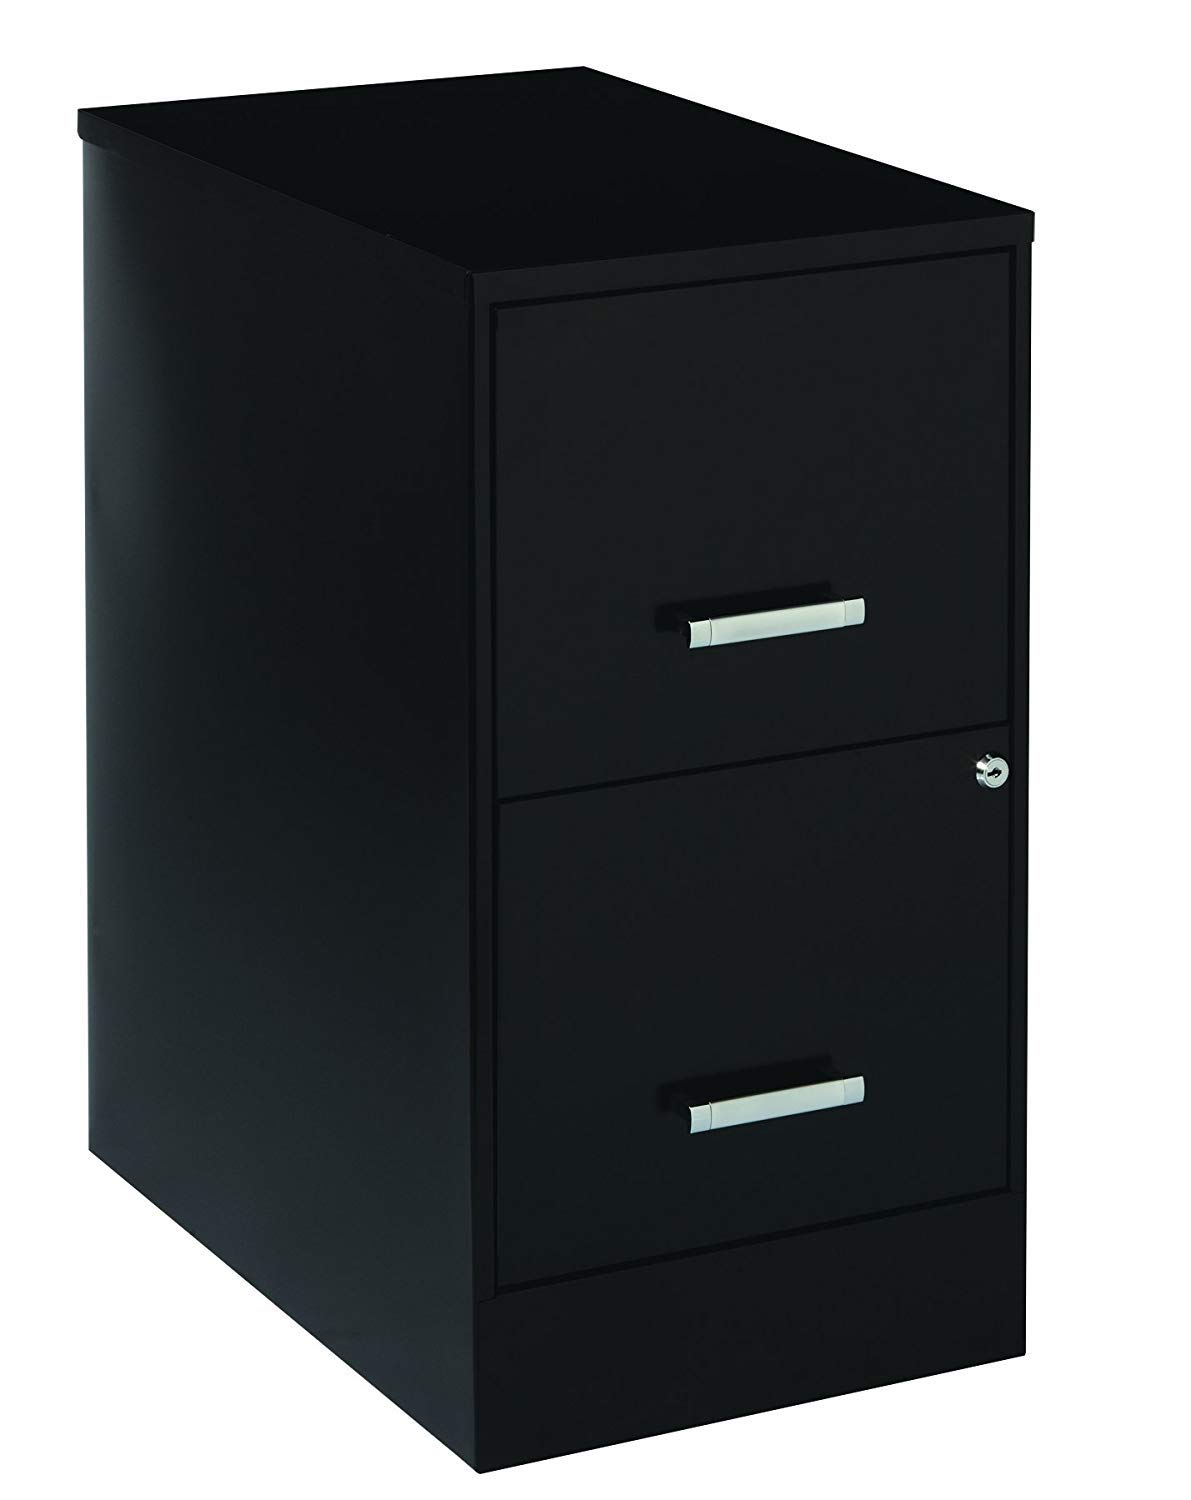 Space Solutions 20226 File Cabinet, 22-Inch Black (1-Unit)